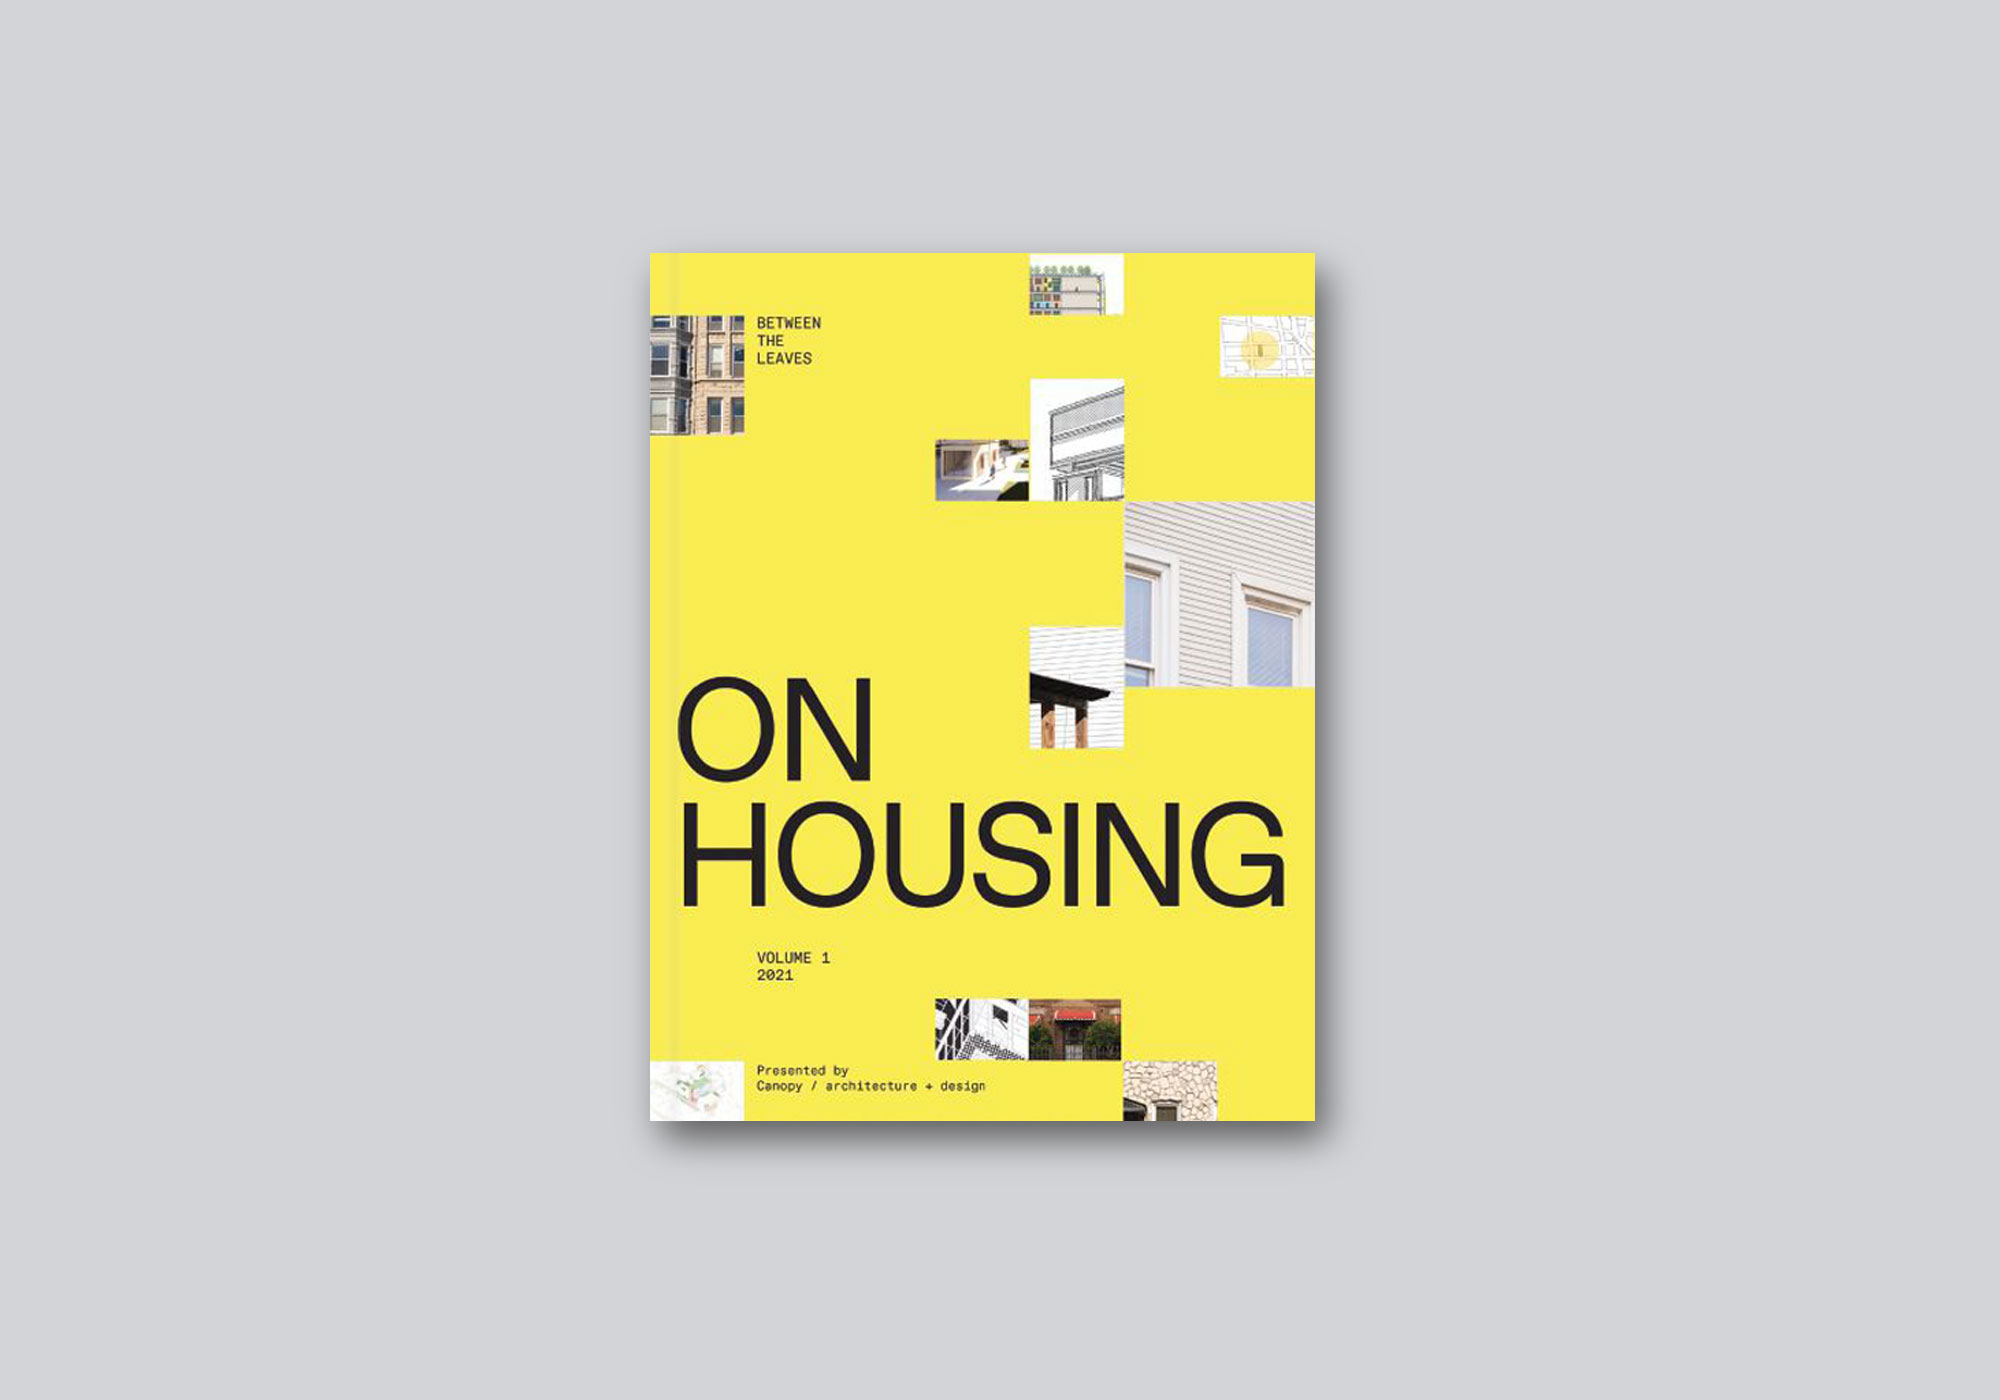 Between the Leaves: On Housing